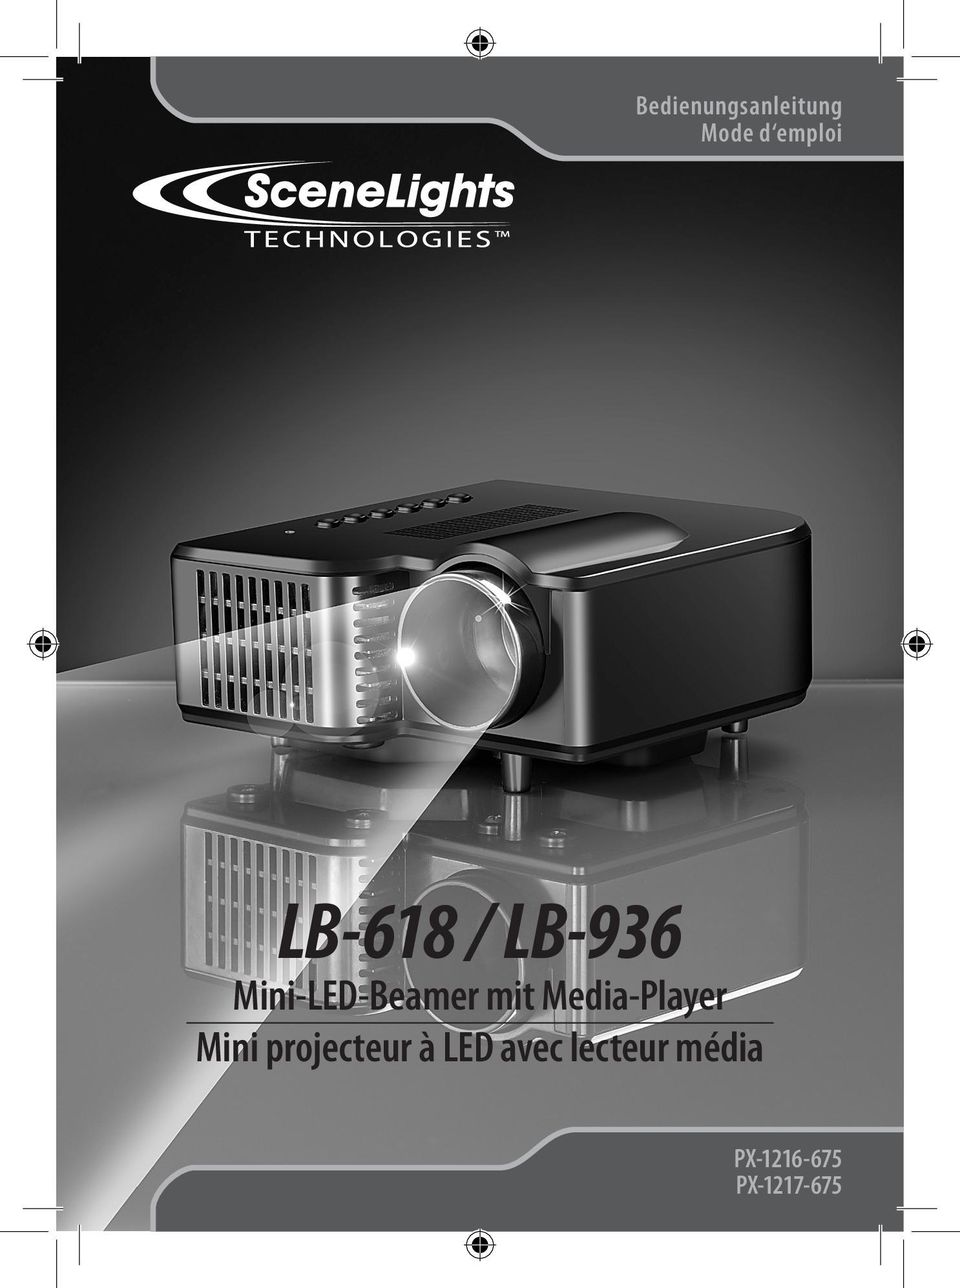 Media-Player Mini projecteur à LED